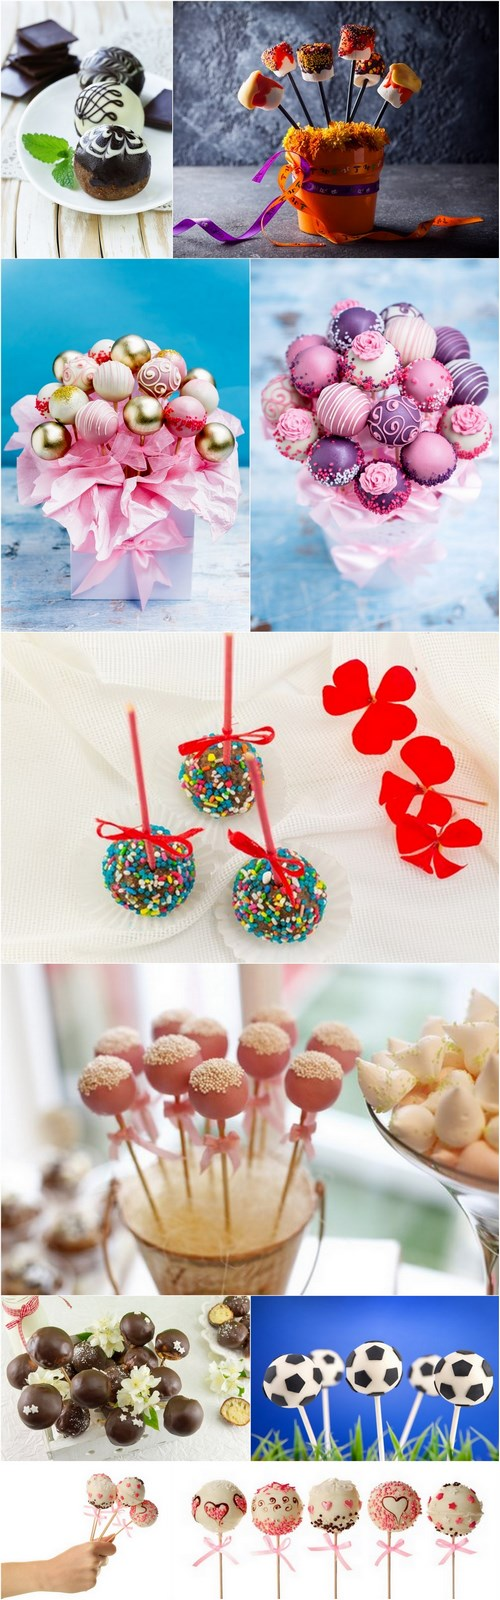 Cake Pops - 10 UHQ JPEG Stock Images